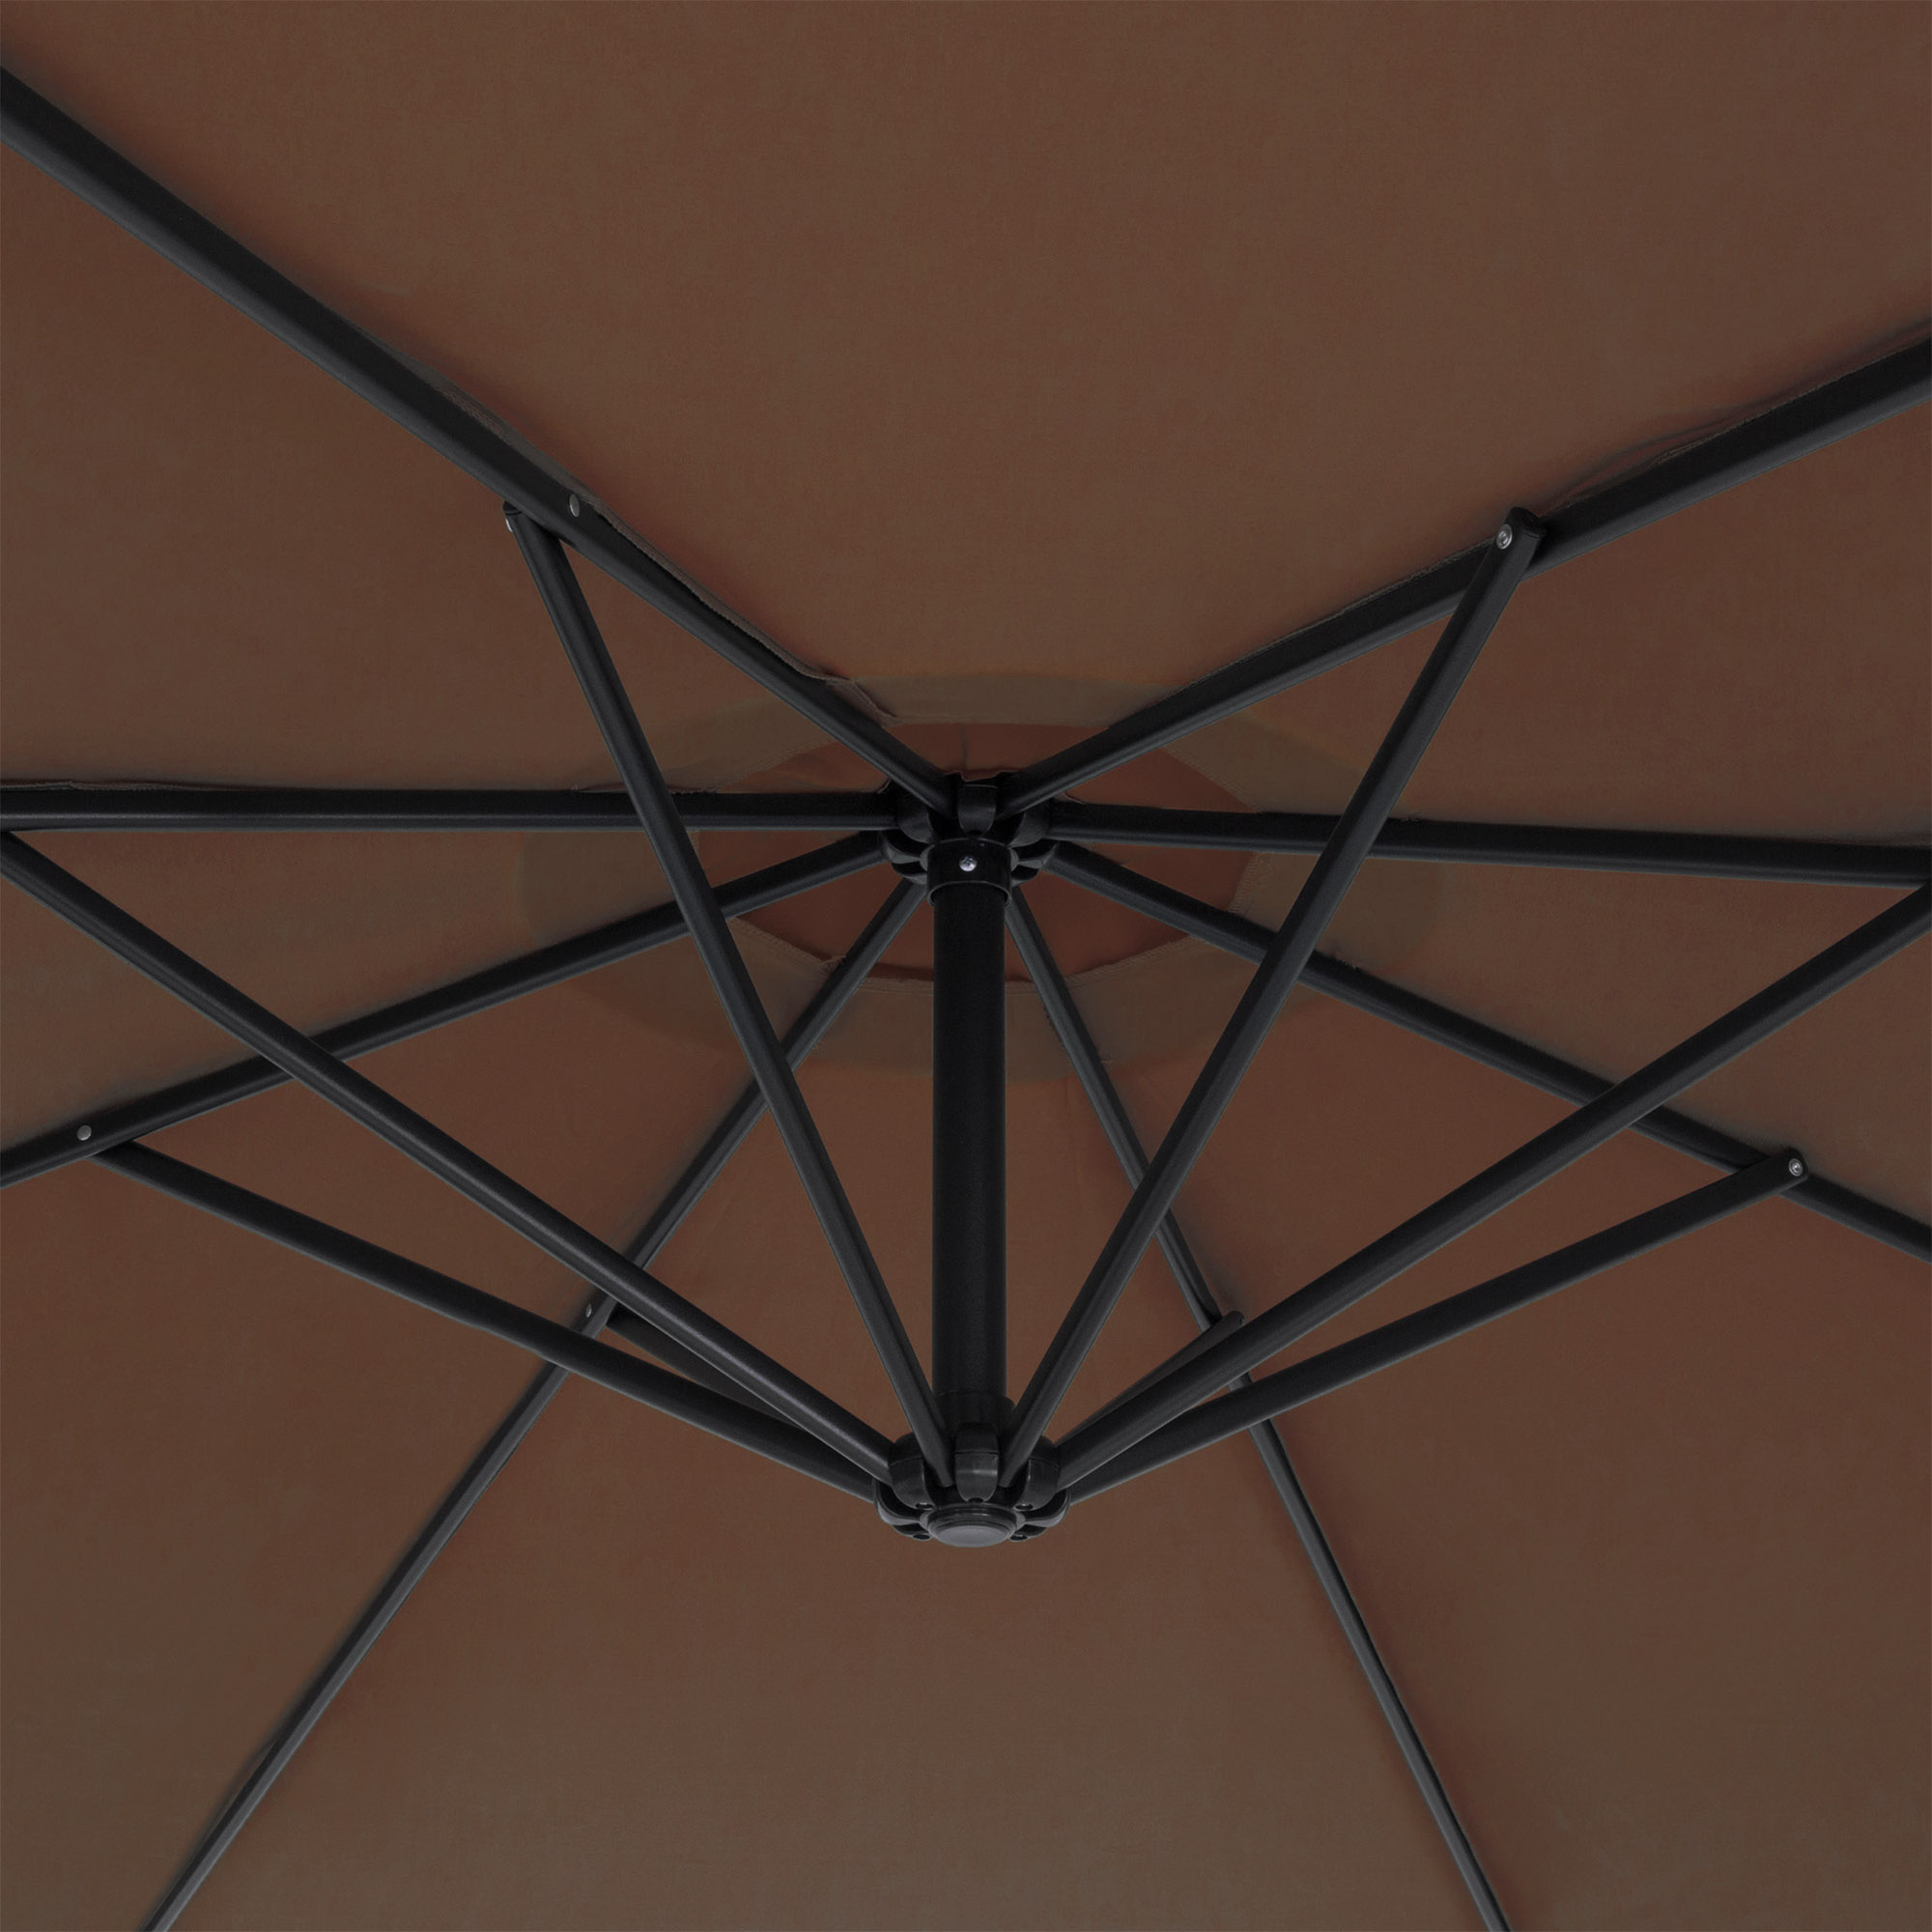 BCP-10ft-Offset-Hanging-Market-Patio-Umbrella-w-Tilt-Adjustment-Hand-Crank thumbnail 22